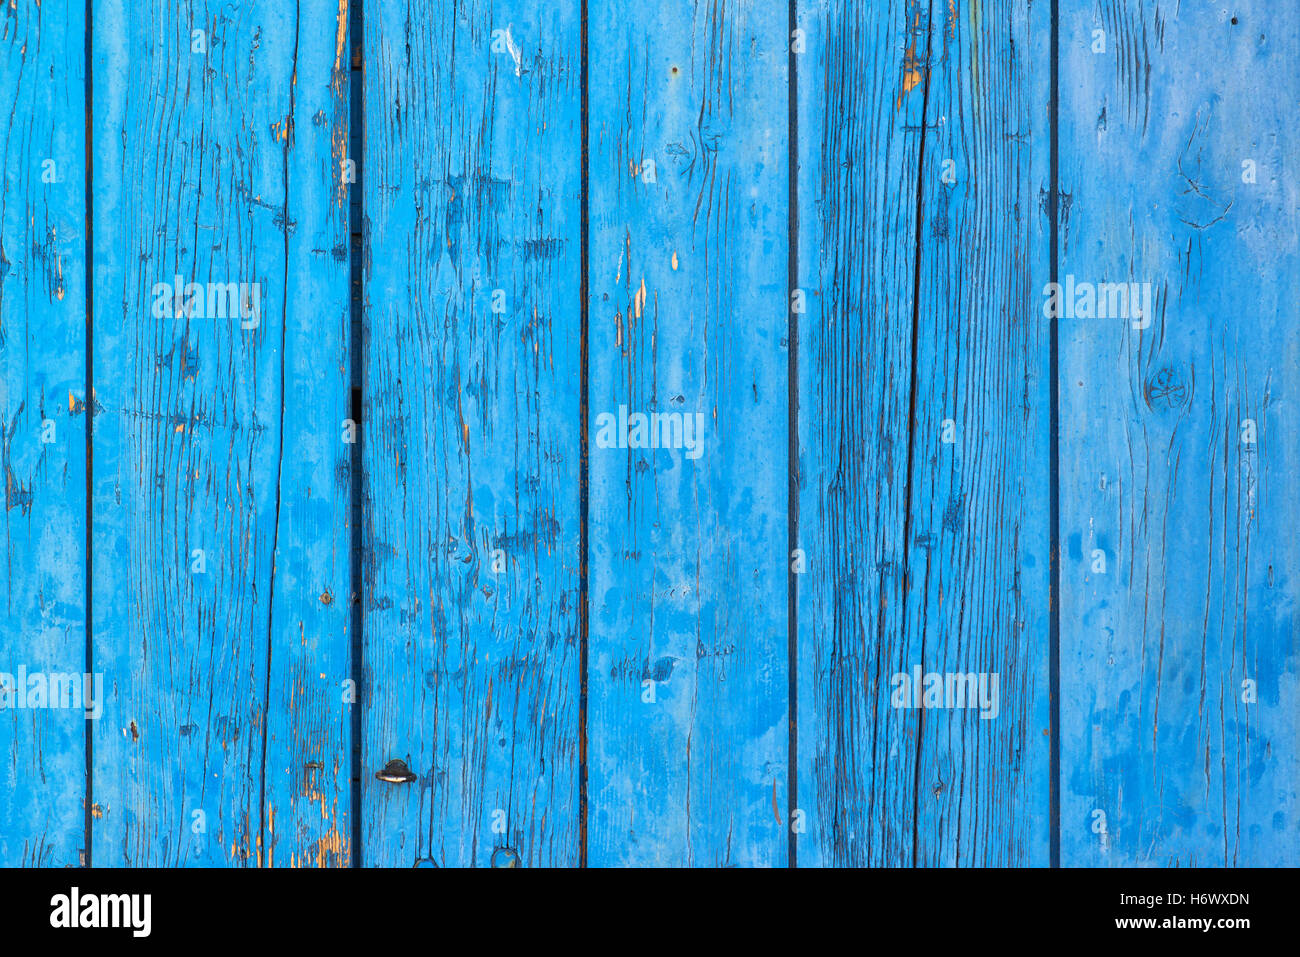 Rustic blue planks surface, old wooden boards with paint peeling off - Stock Image